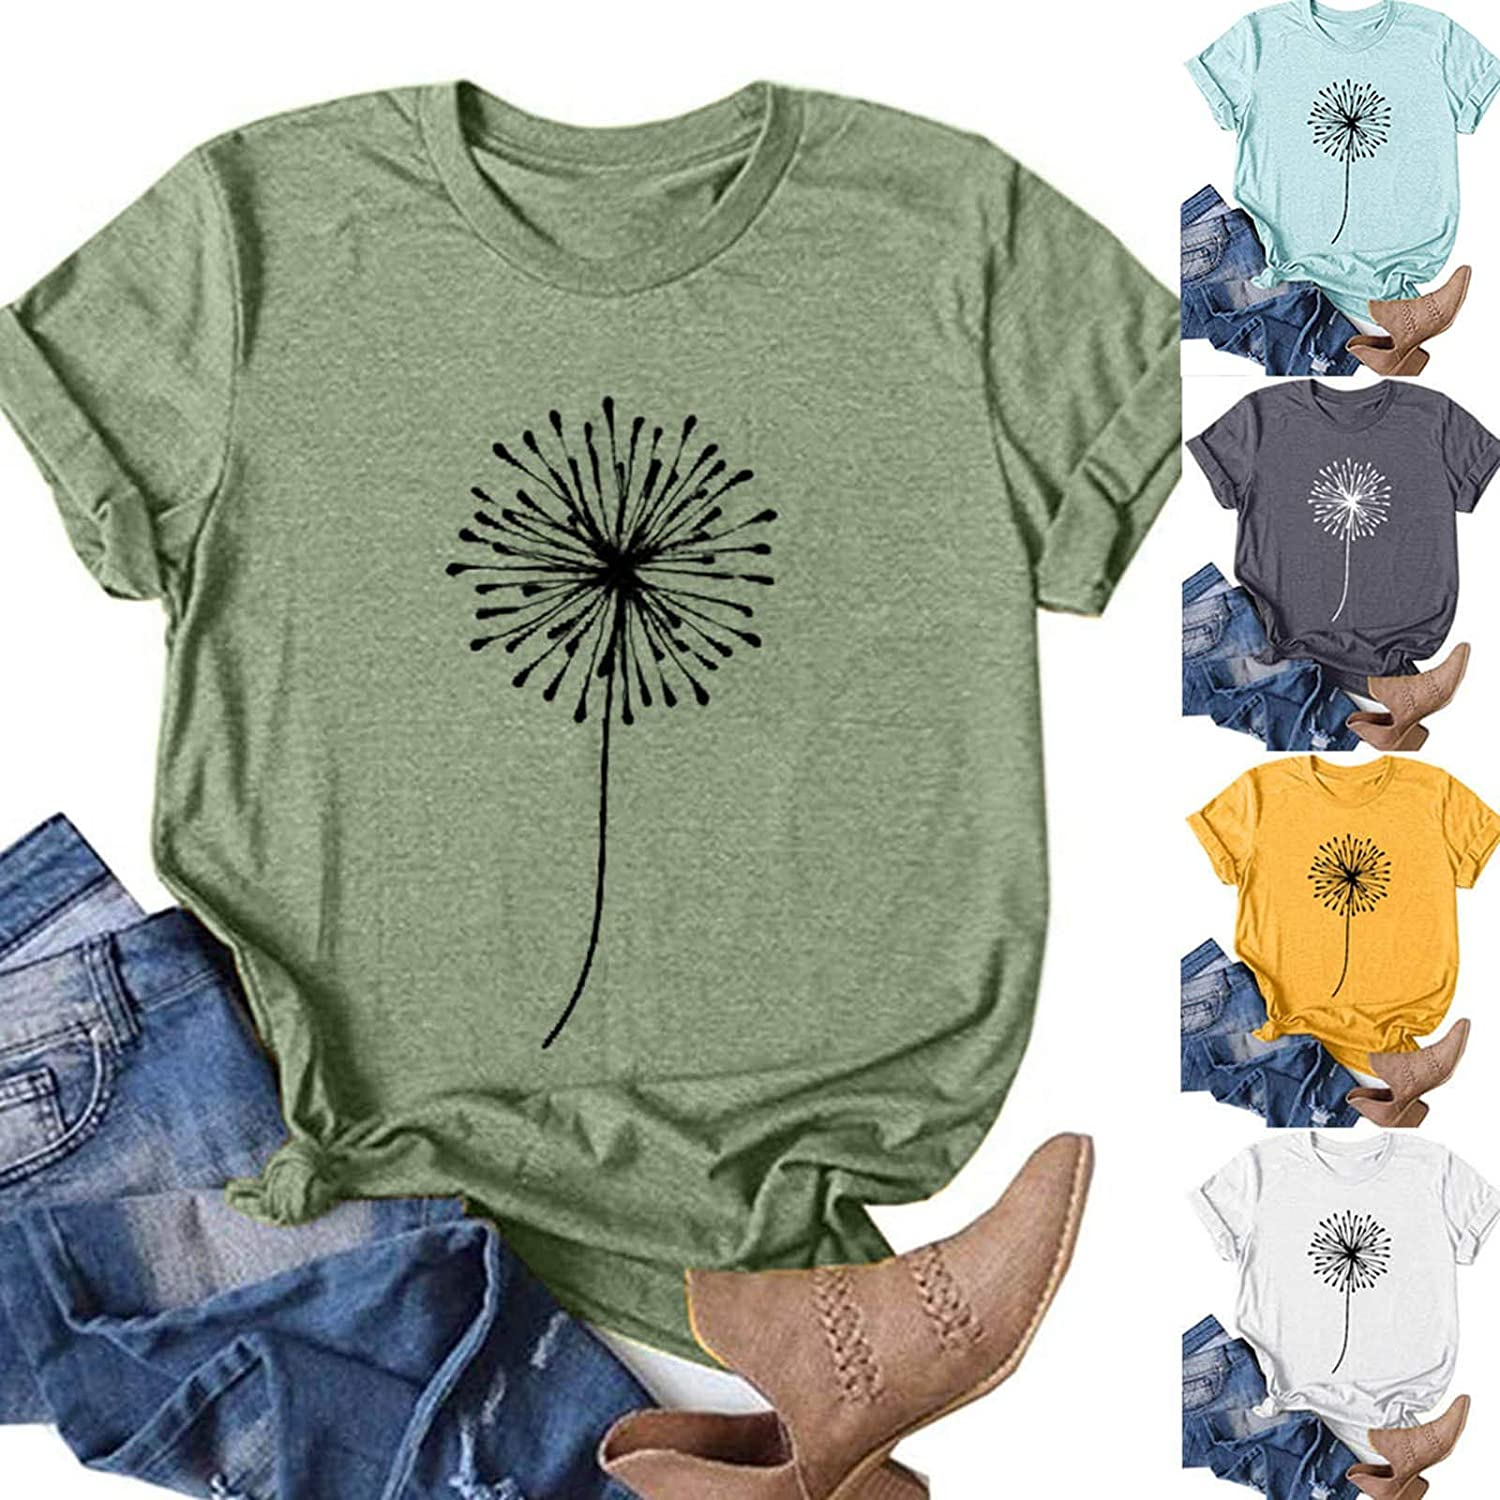 Beppter Women Summer Tops Trendy Casual Short Sleeve Sunflower Graphic Tees Workout Shirts Loose Fit Blouses Tshirts(A-Blue,XX-Large)